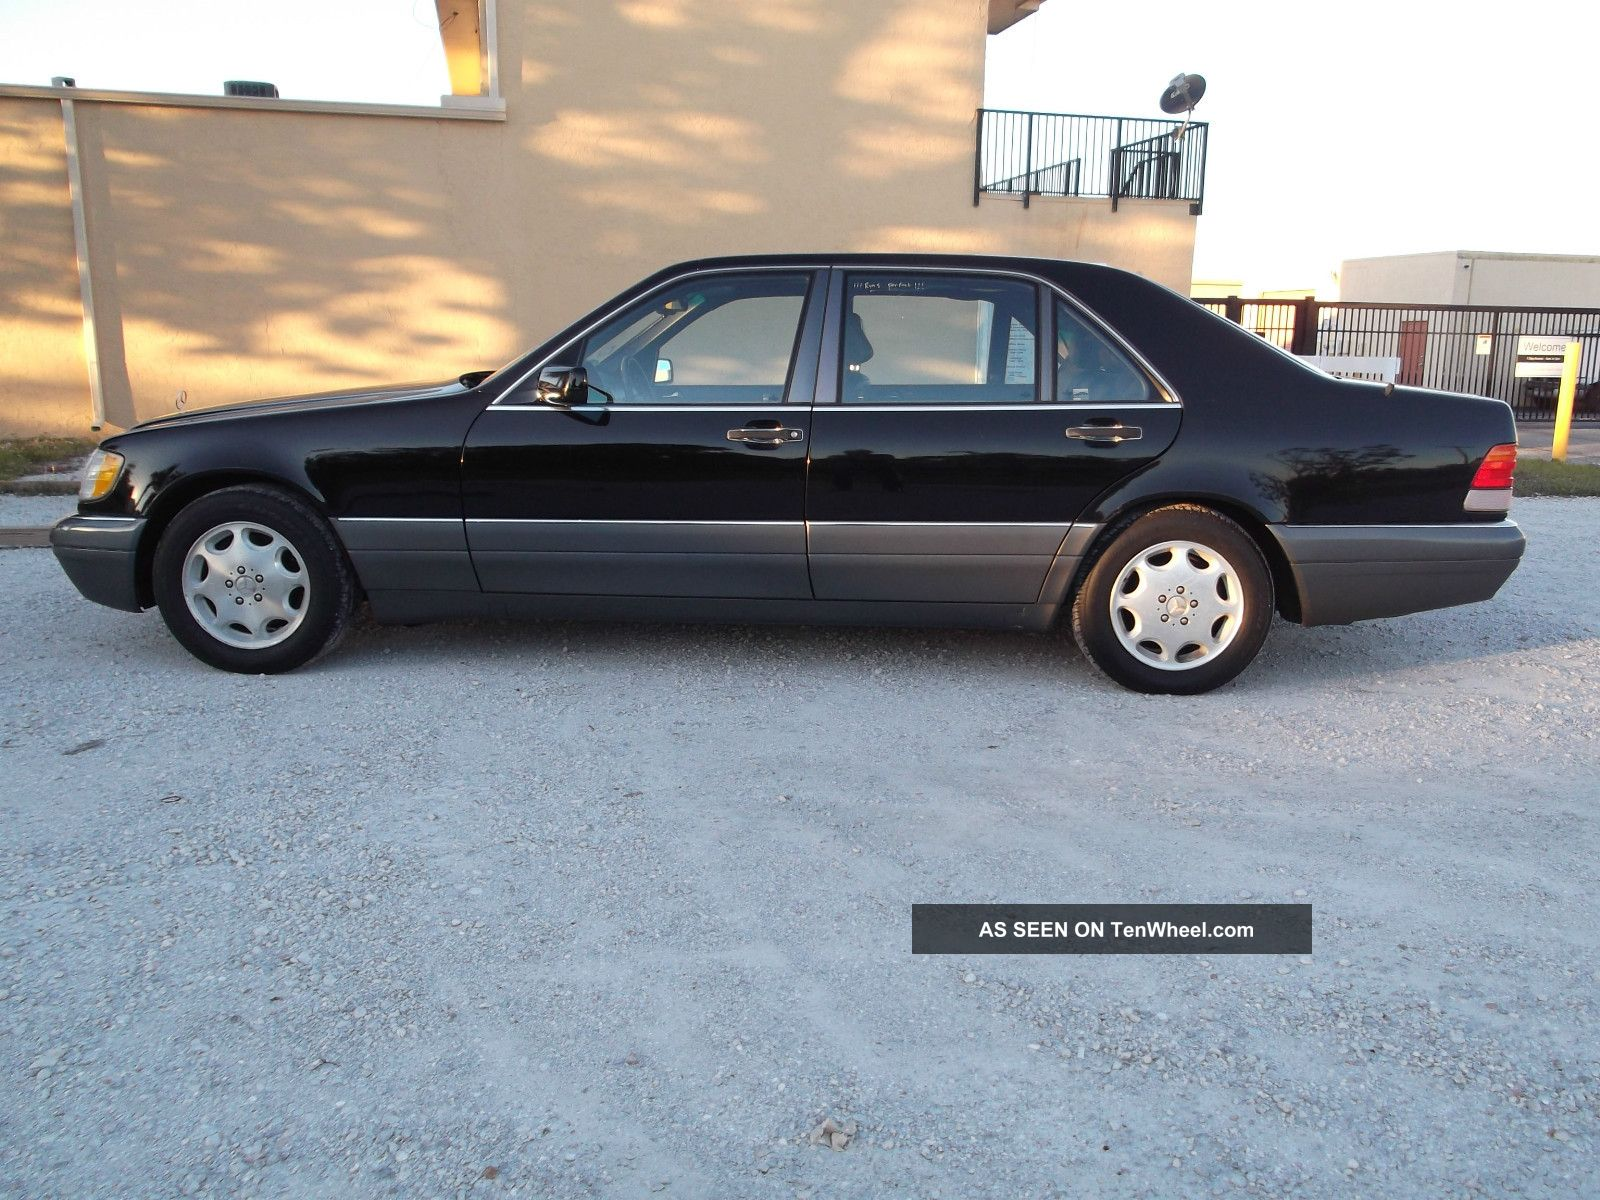 1996 S420 Straight Body No Dings Or Dents Priced To Sell Fast S-Class photo